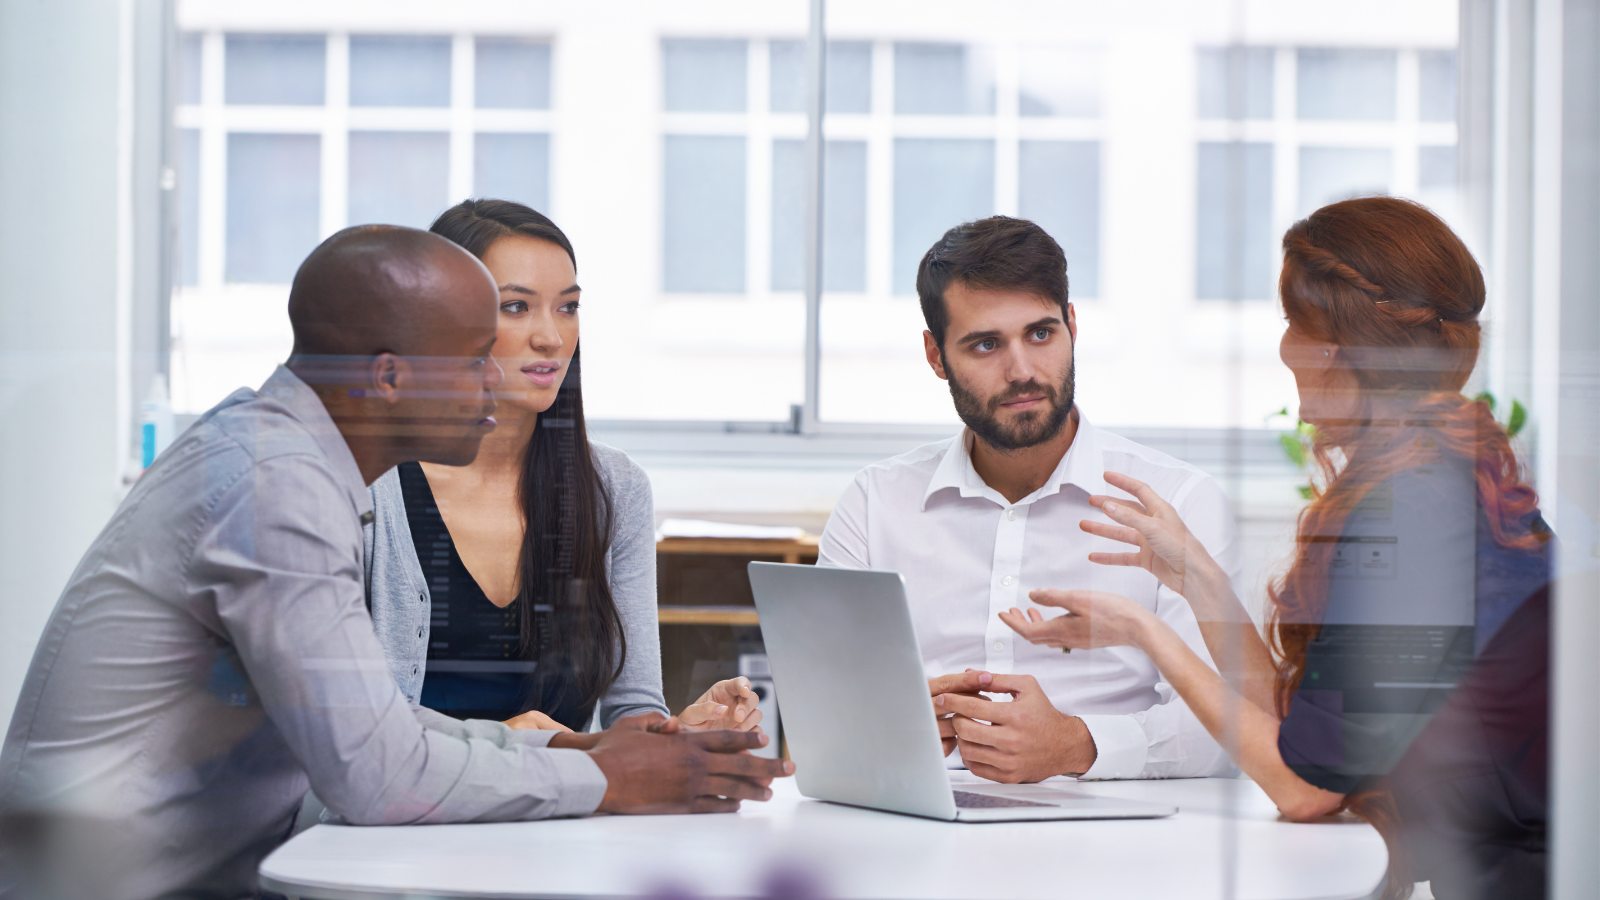 Why do you need different types of people in your teams to succeed?